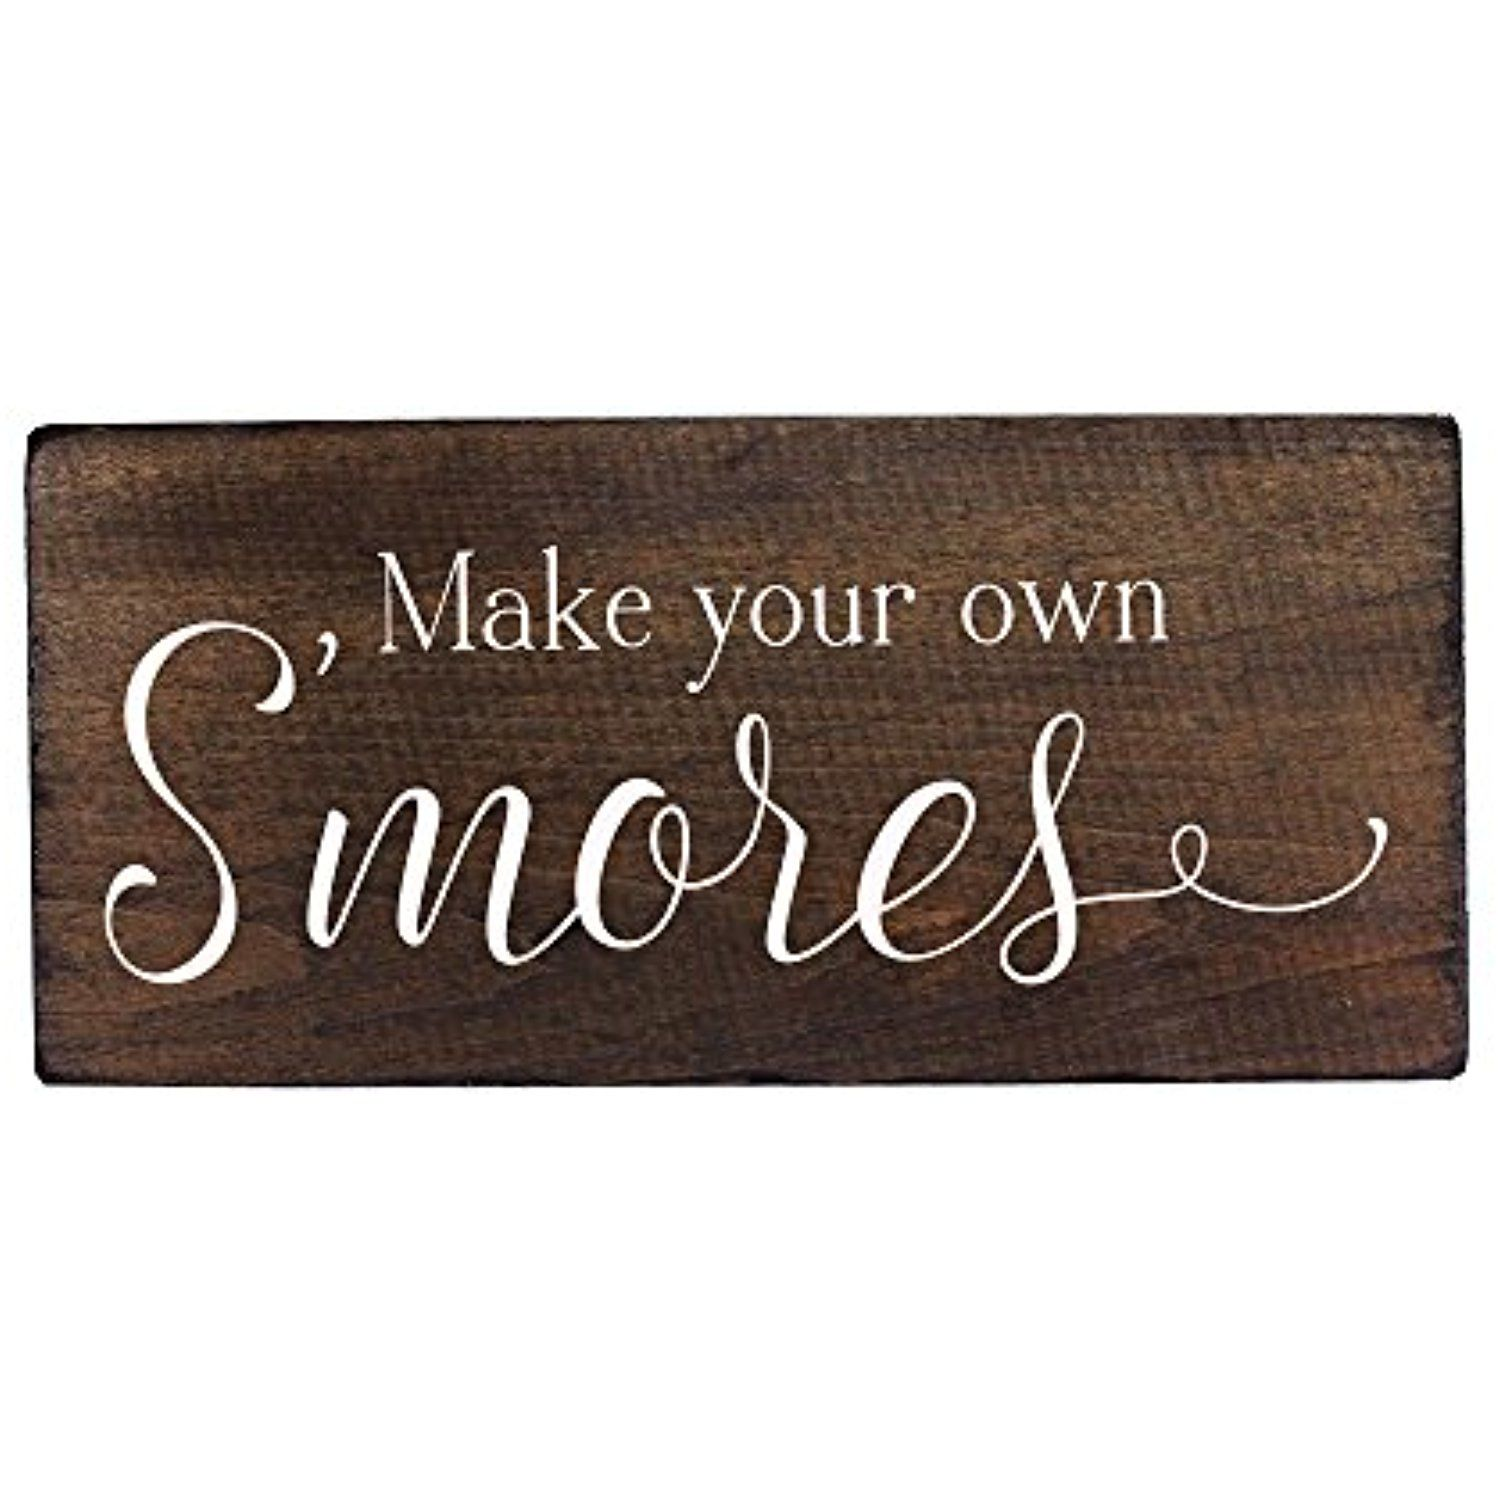 Bar Signs And Decorations Outdoor Party Decorations Smores Bar Sign Supplies For Wedding